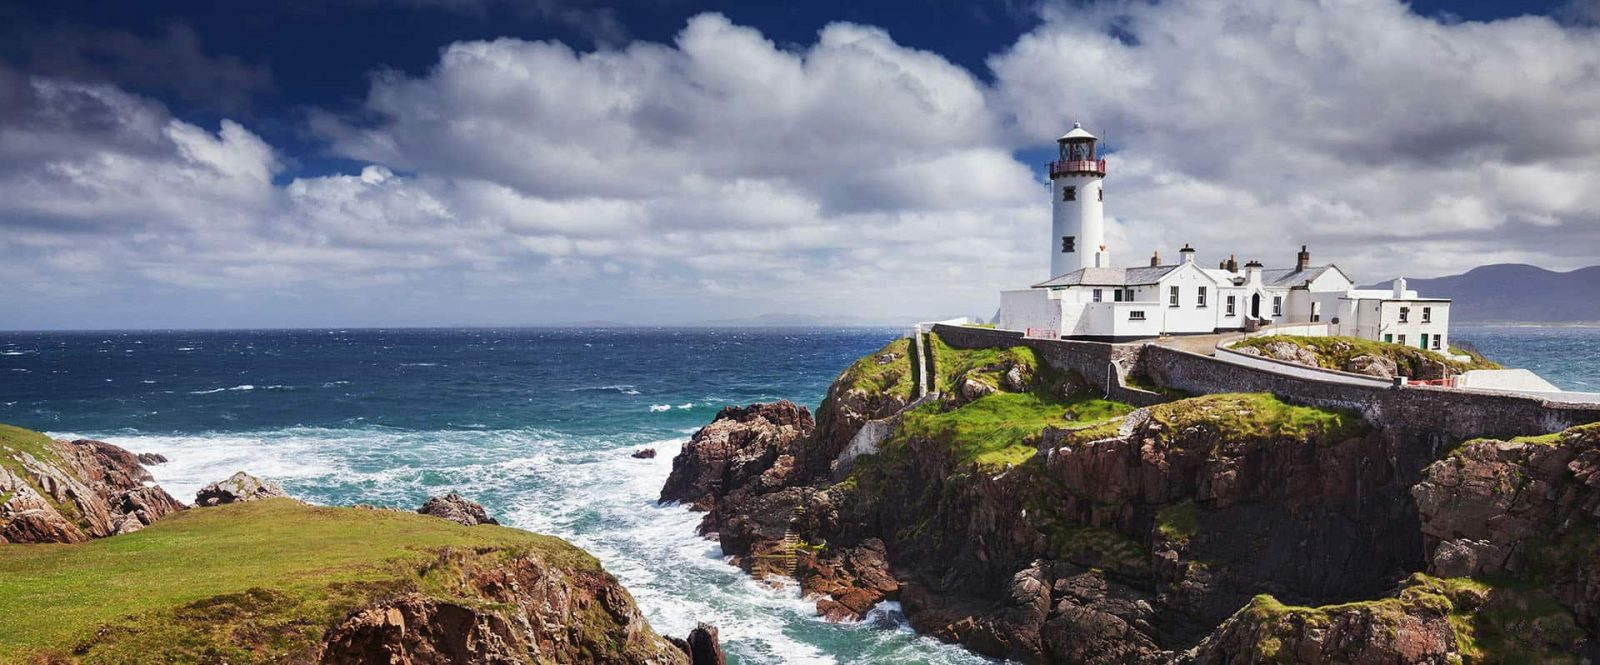 5 Interesting Things in Ireland You Need to Know